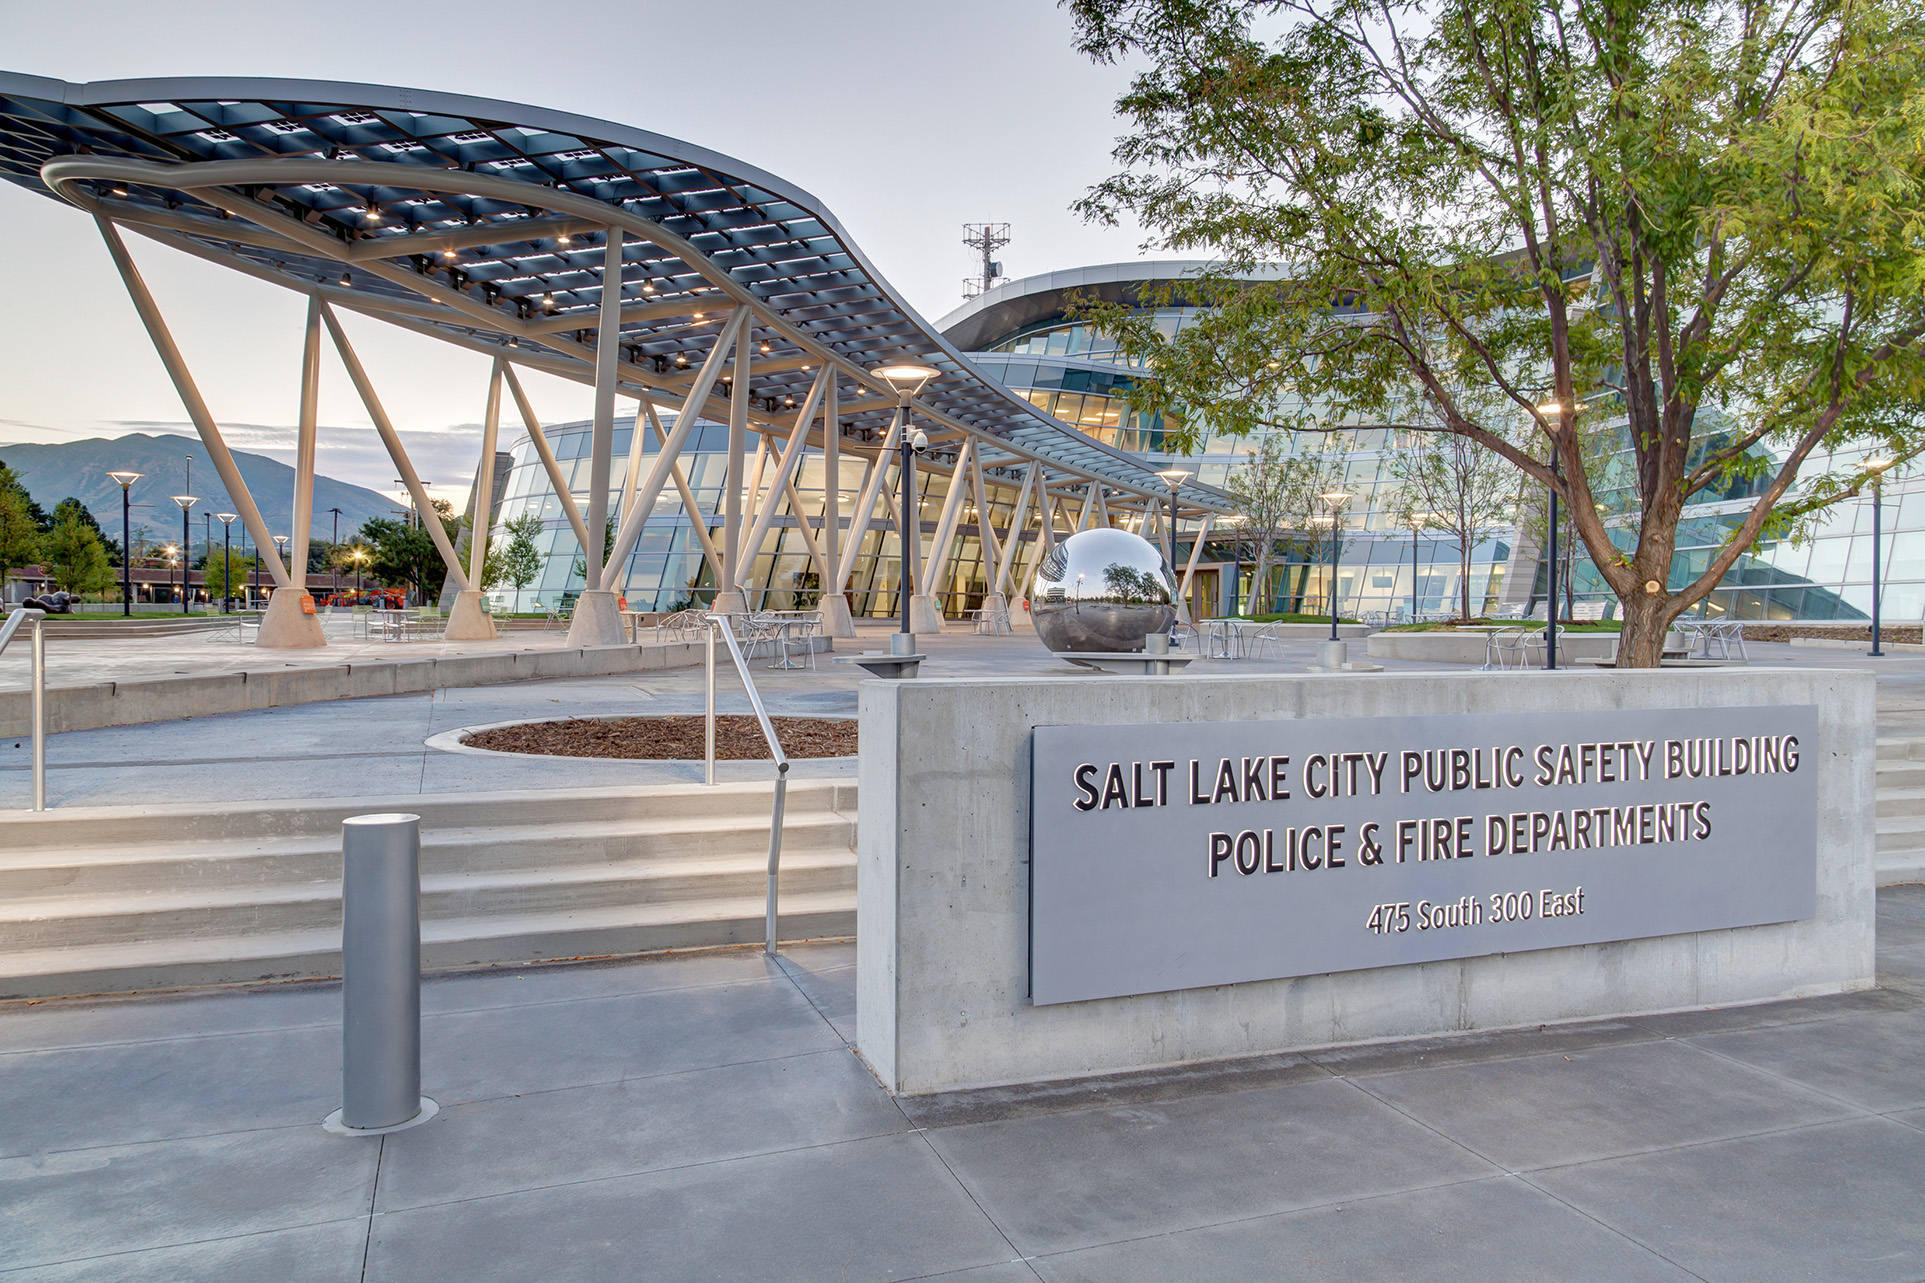 Salt Lake City Public Safety Building